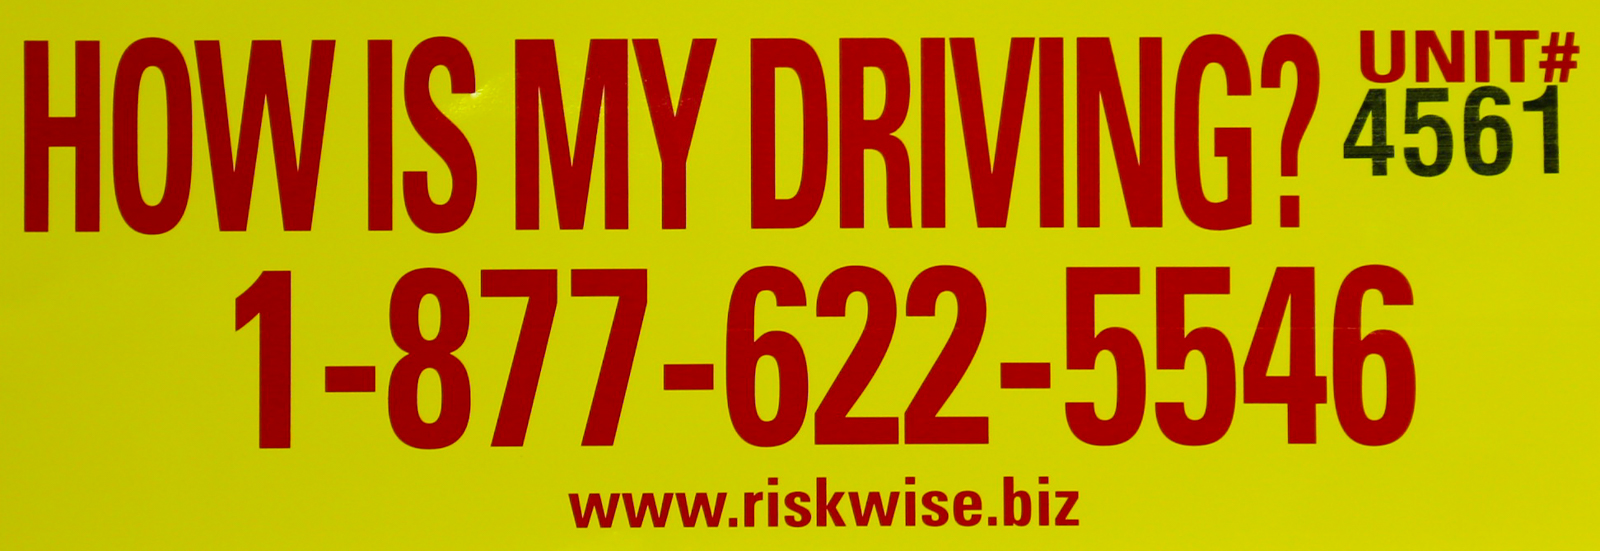 hows-my-driving-sticker